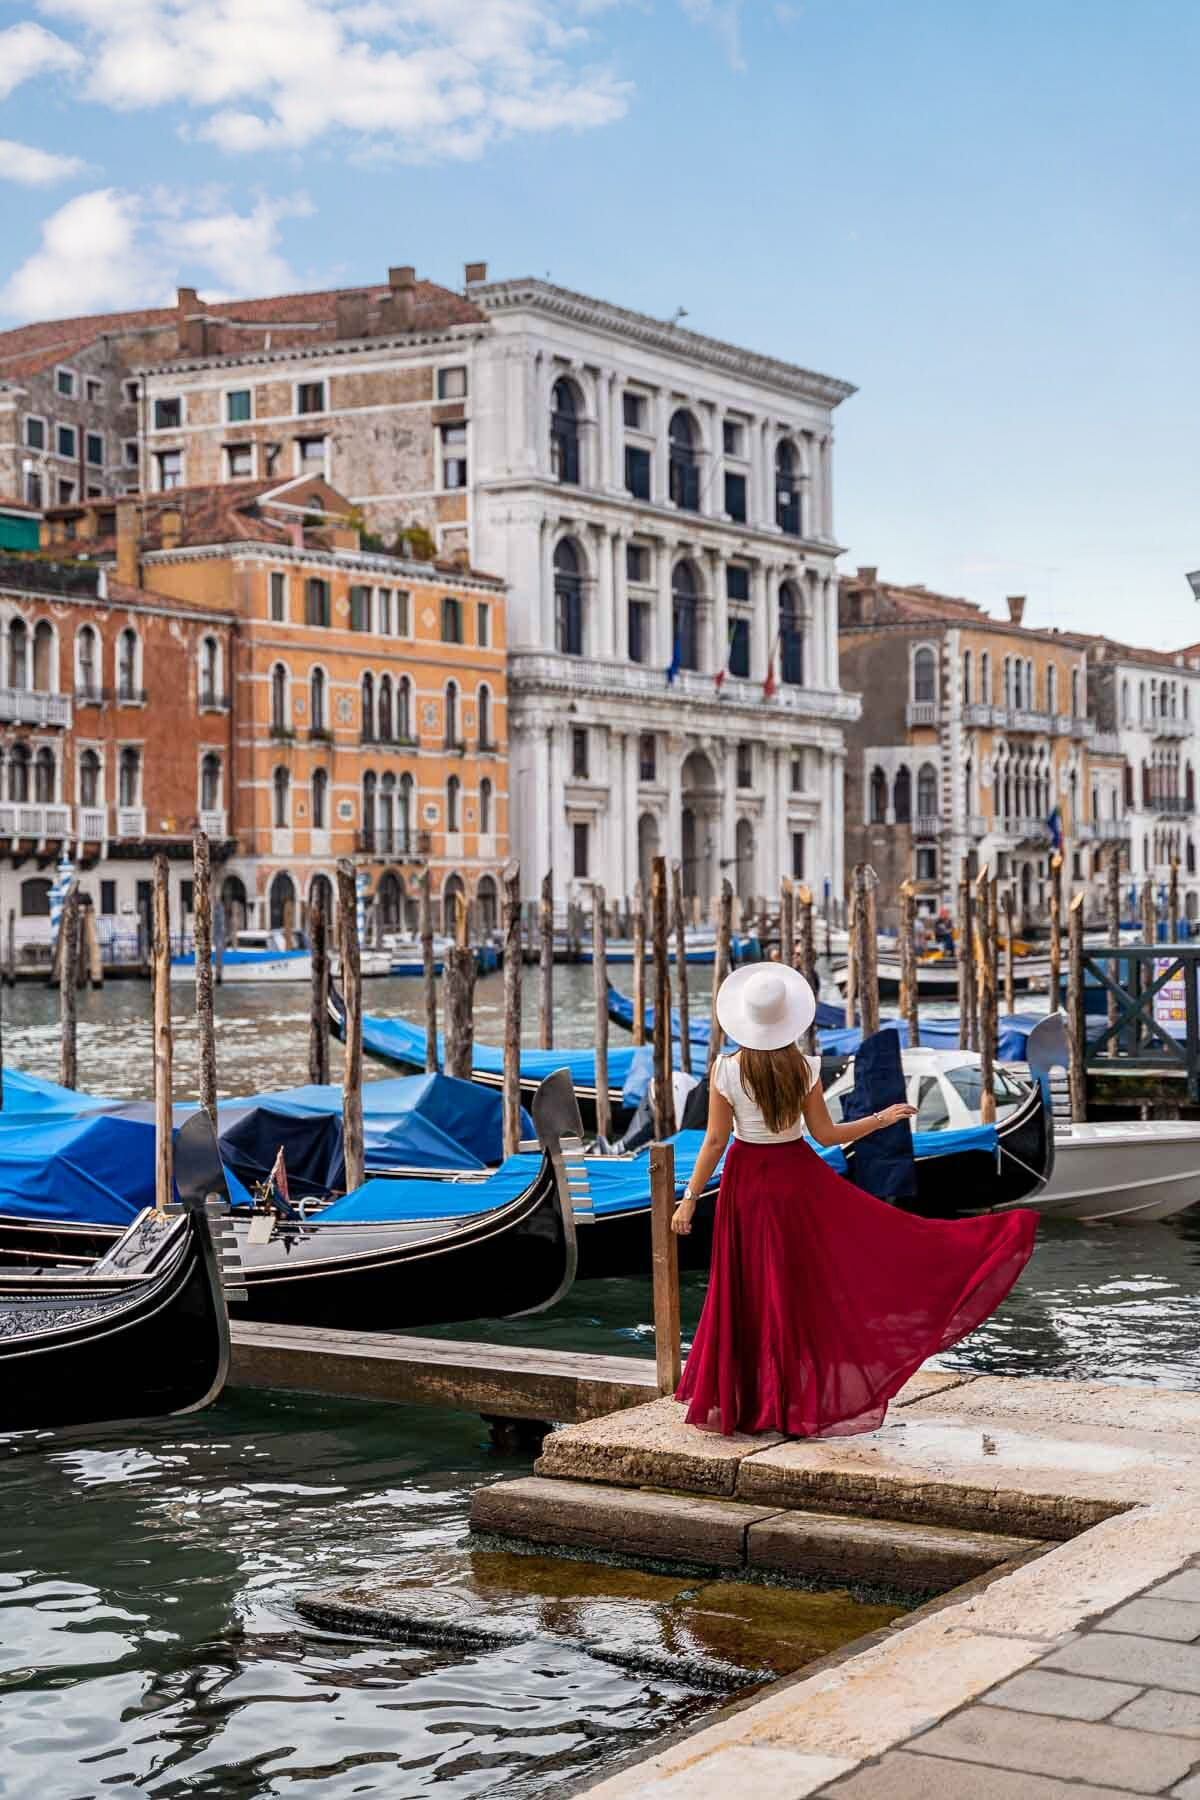 Girl in a red skirt standing in front of the gondolas along the Grand Canal in Venice, Italy